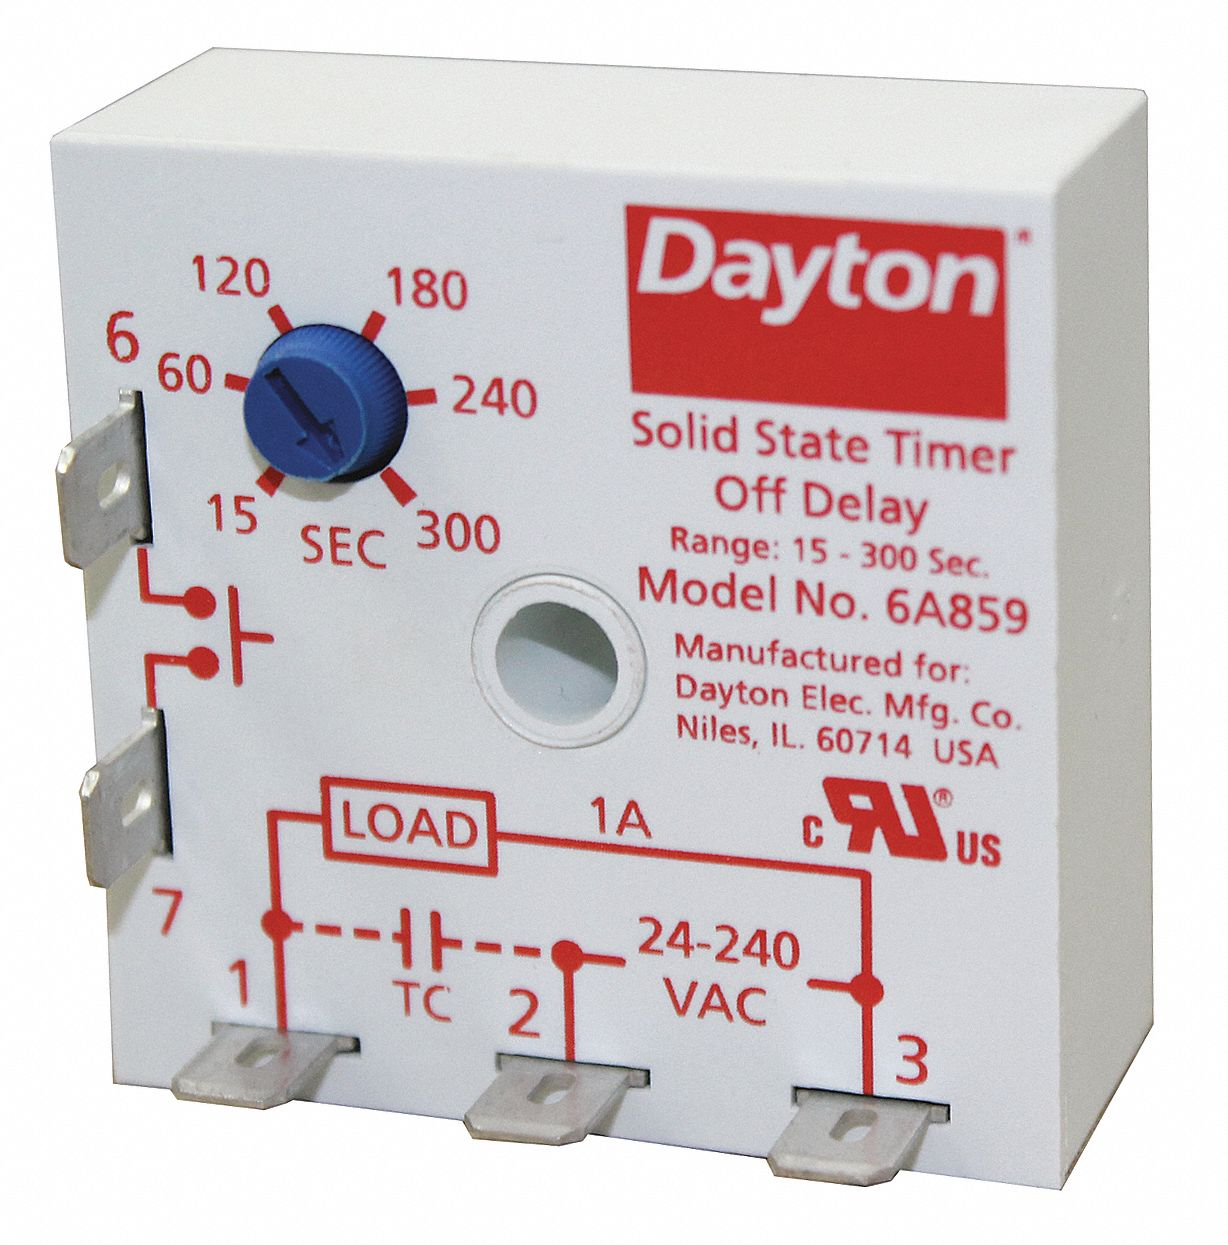 Dayton 6a859 Wiring Diagram Reinvent Your Cyclic Relay Single Function Encapsulated Timing 24 To 240vac Rh Grainger Com Doorbell Wires